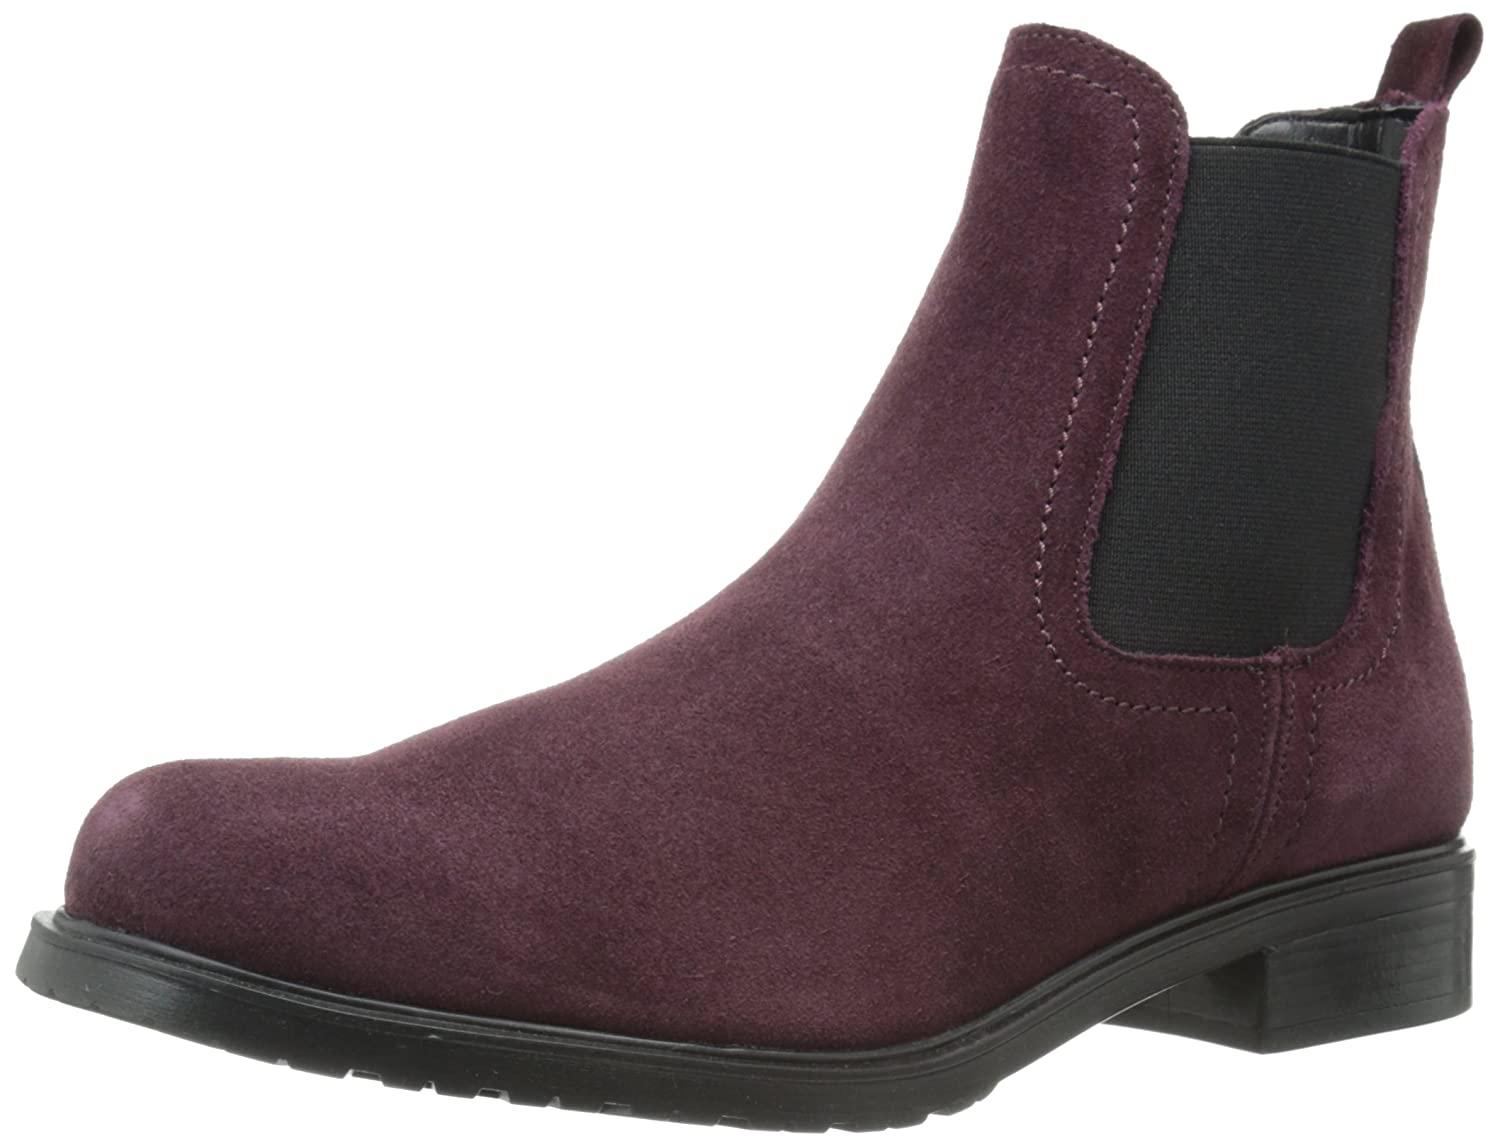 The FLEXX Women's Shetland Boot B00TI6O0OE 6.5 B(M) US|Merlot Suede